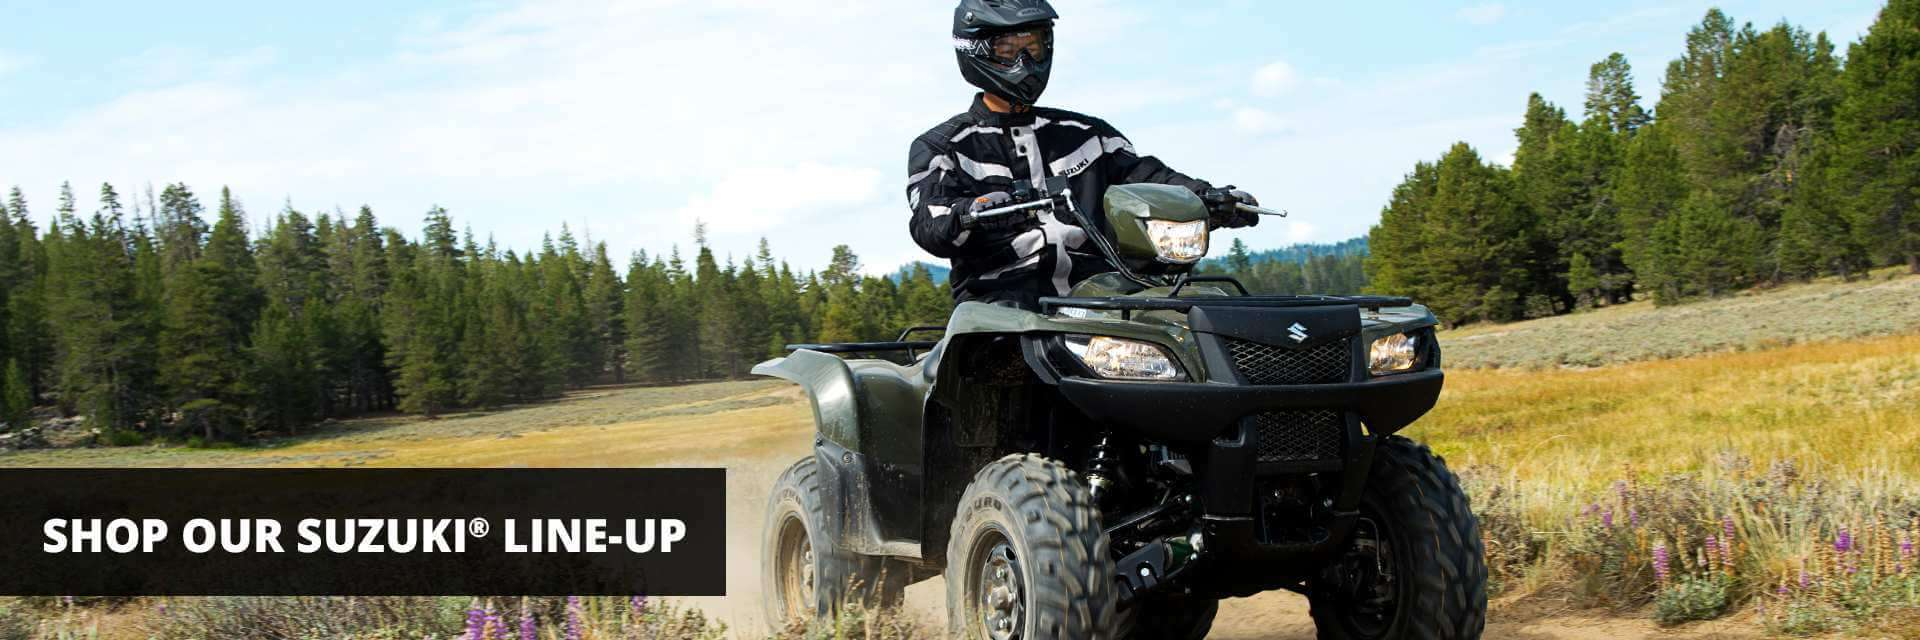 Broadway Powersports | Shop Suzuki Line-Up